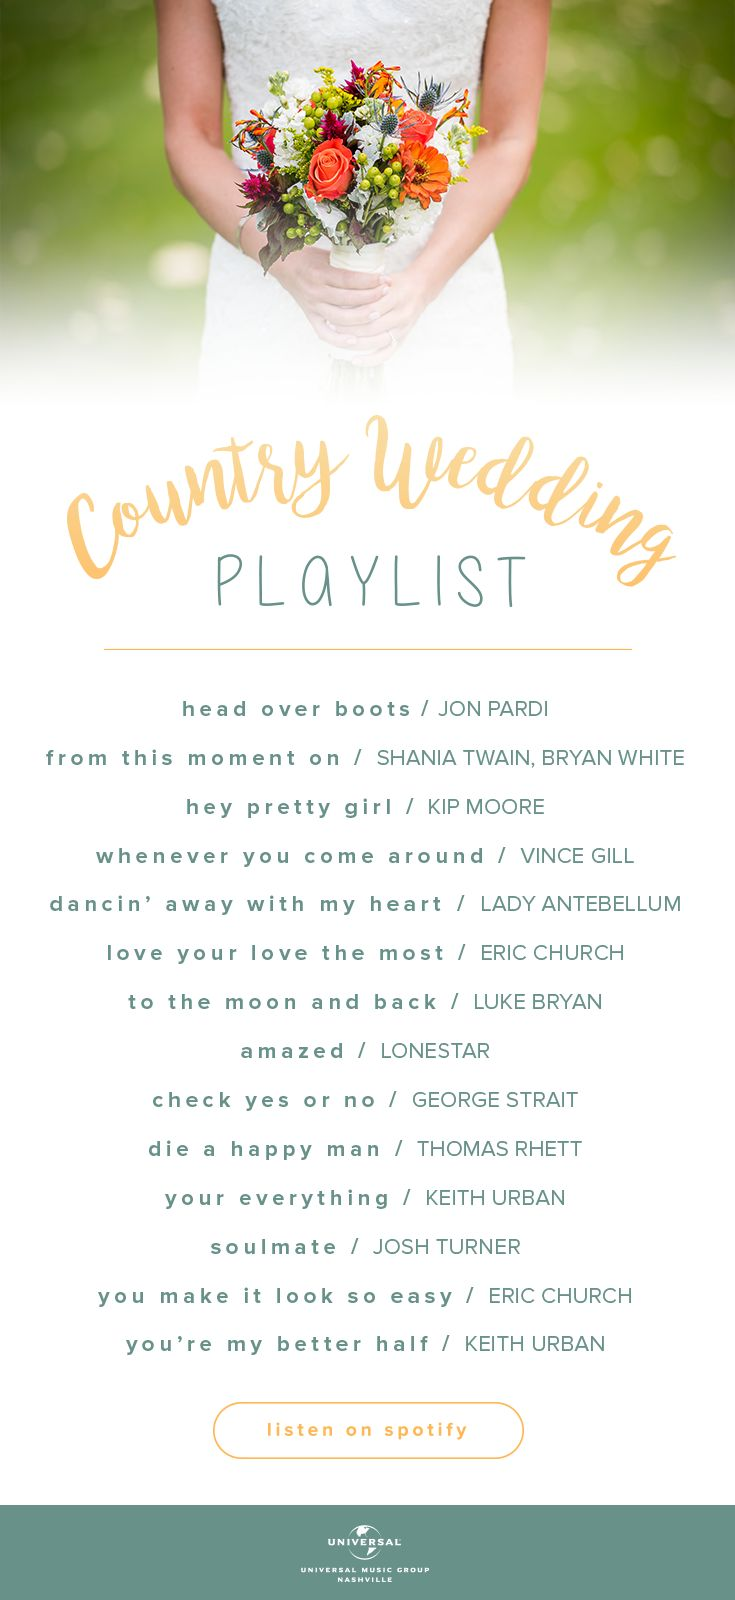 Best 20 Country weddings ideas on Pinterest  Country wedding decorations Rustic wedding